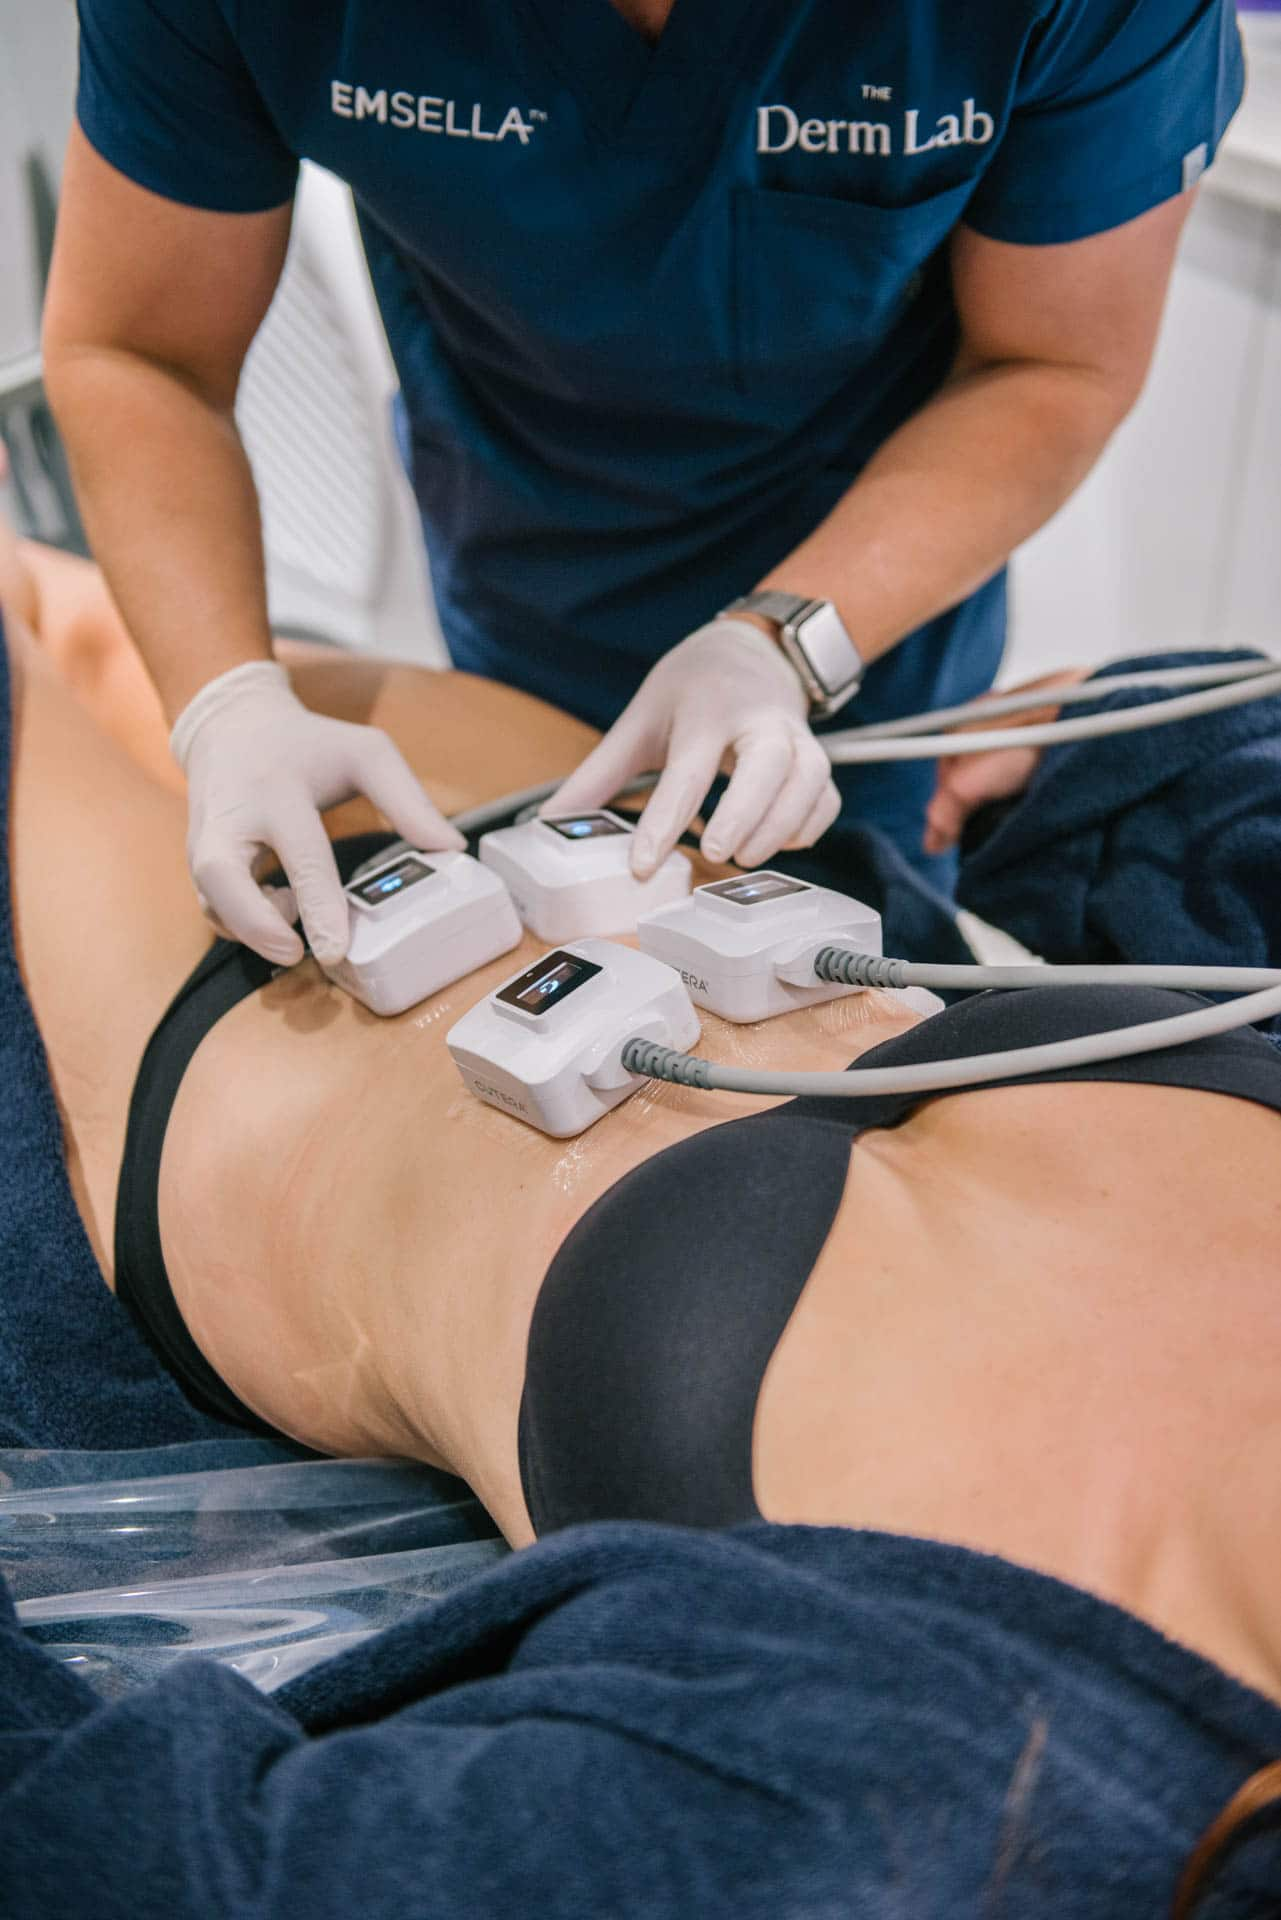 Fat freezing vs. truSculpt iD